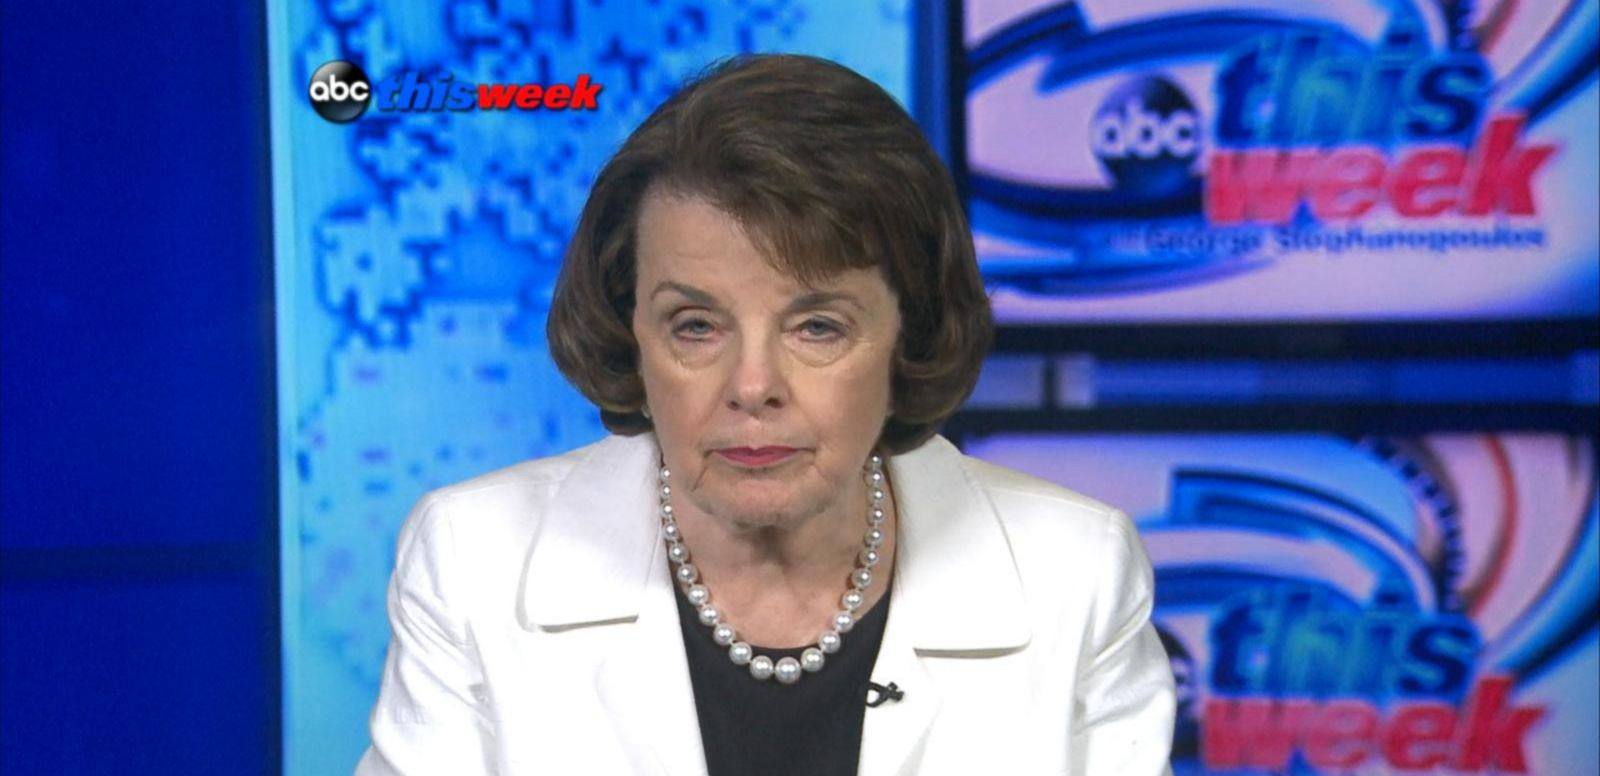 VIDEO: Feinstein Says Bernie Sanders' Campaign 'All But Over'